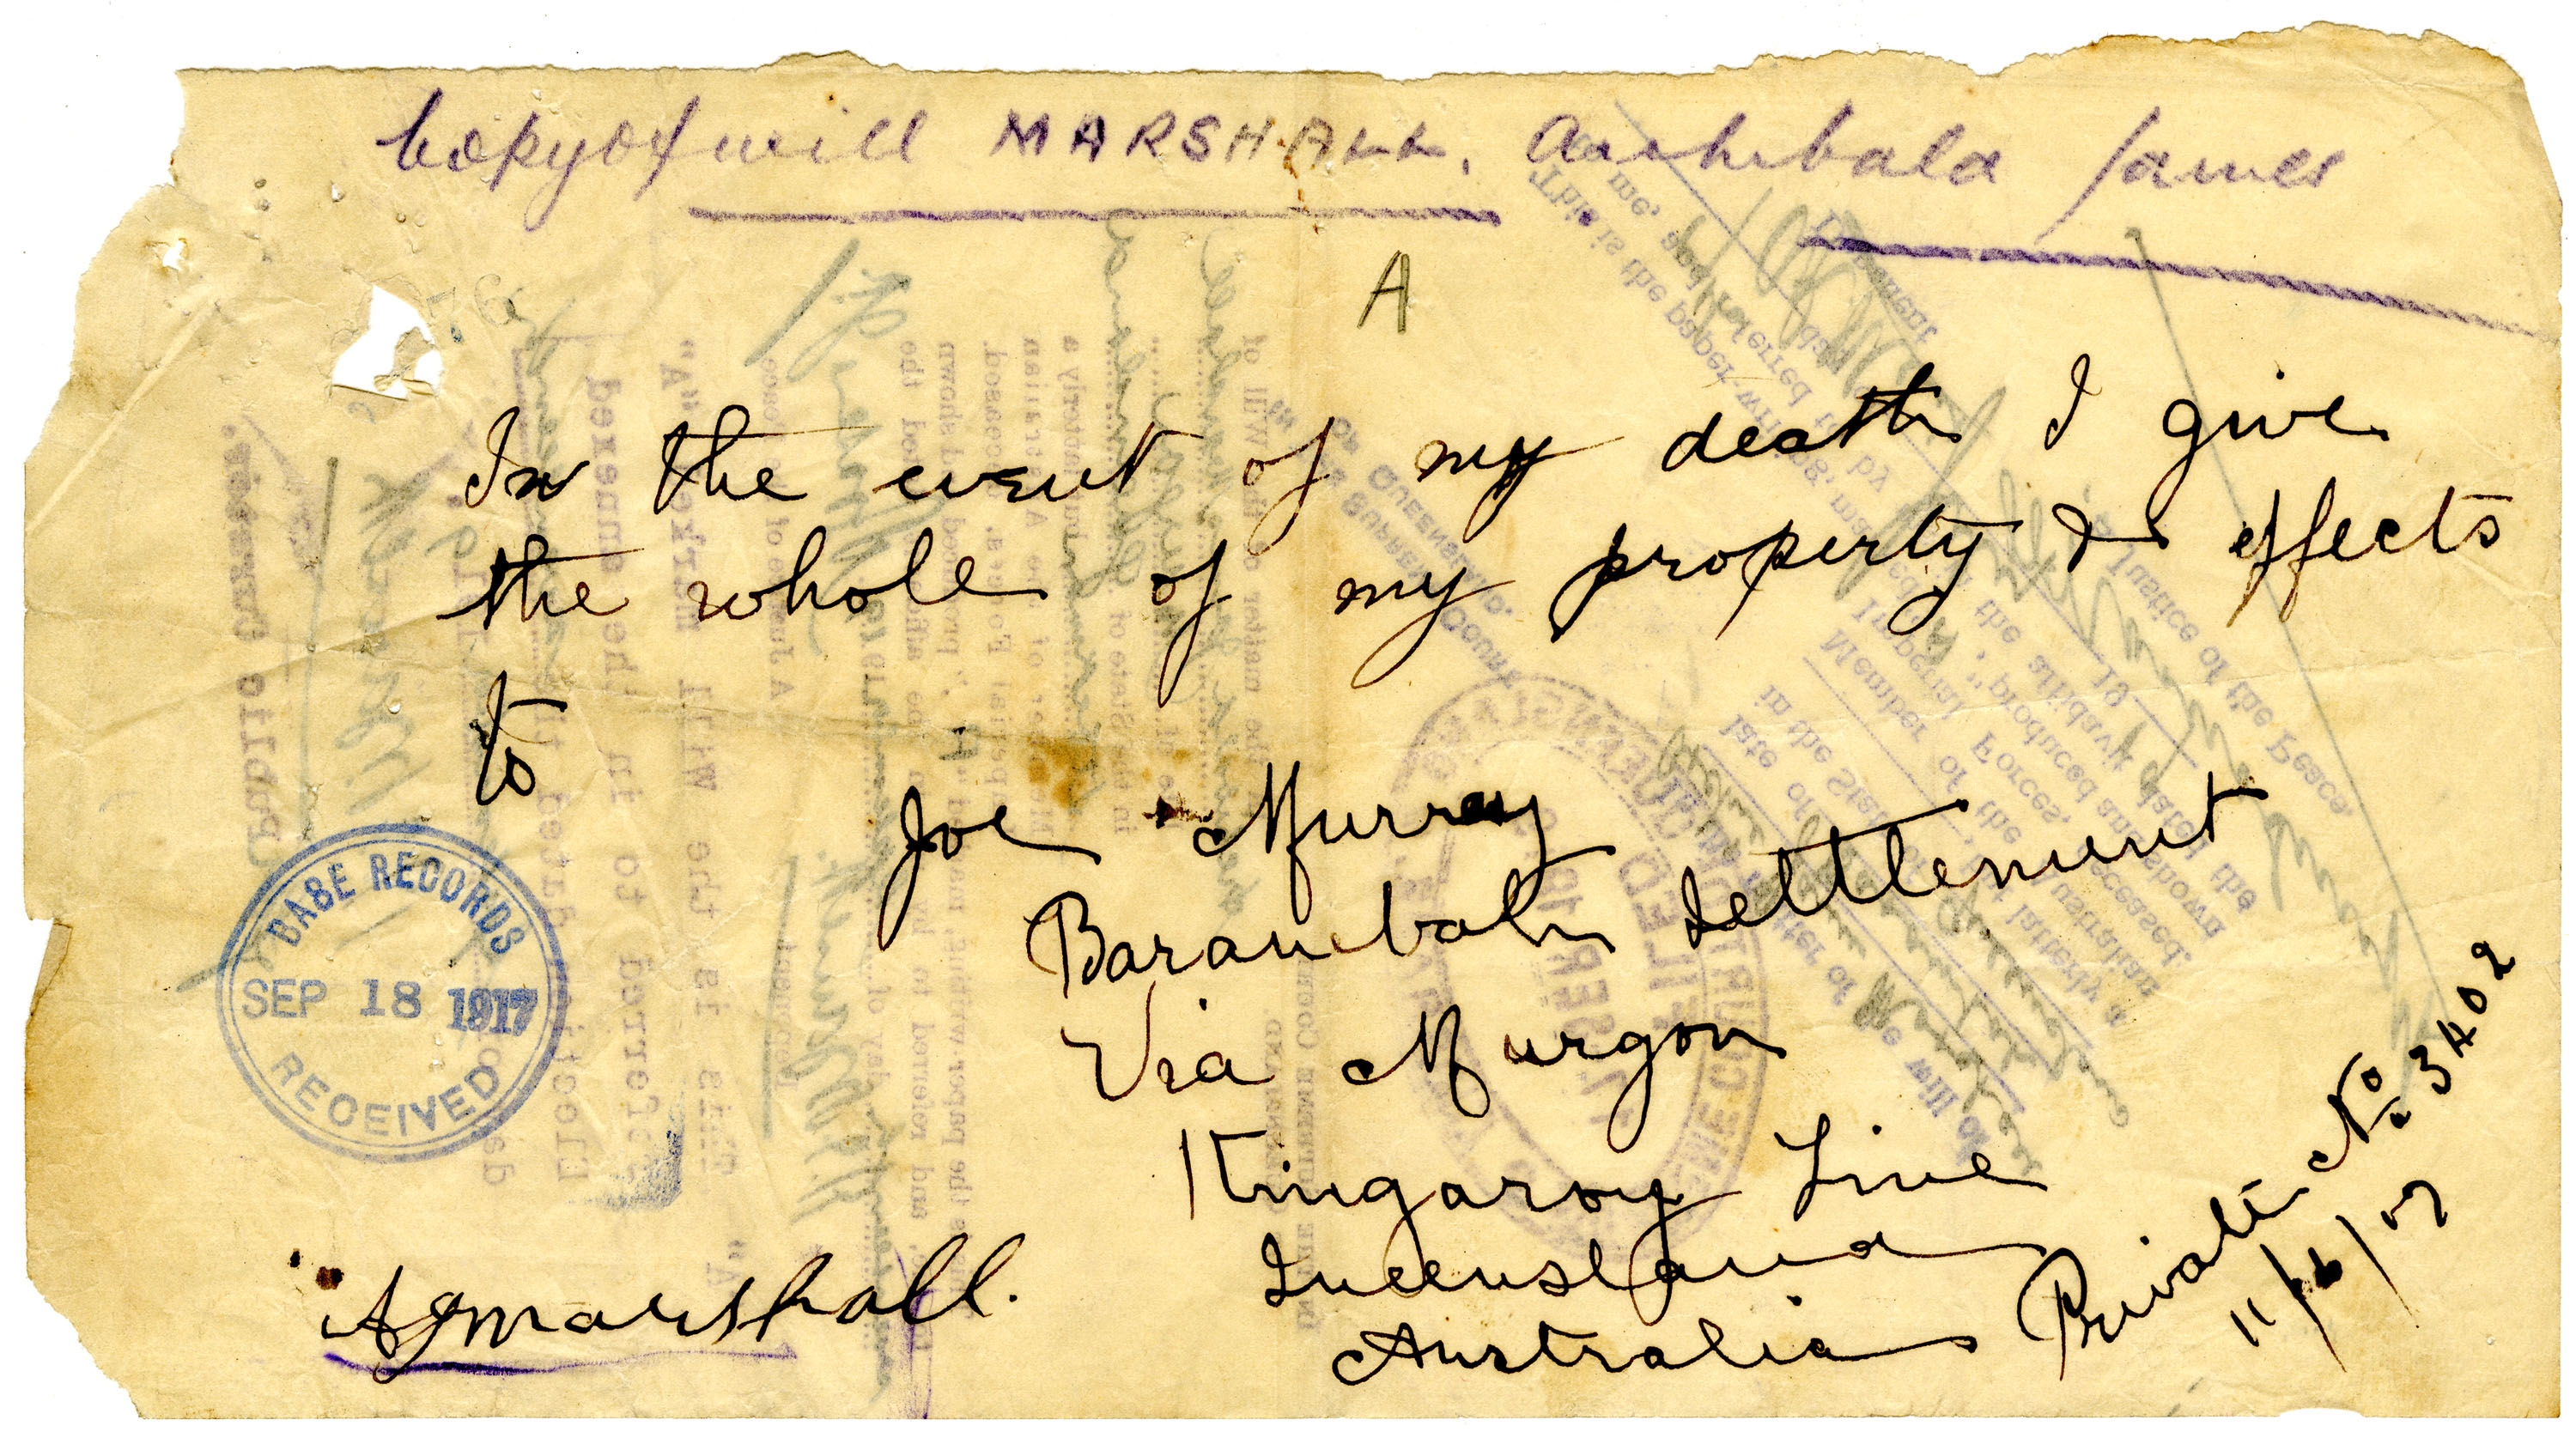 Contained in the Supreme Court file - Queensland State Archives, Digital Image ID 27000